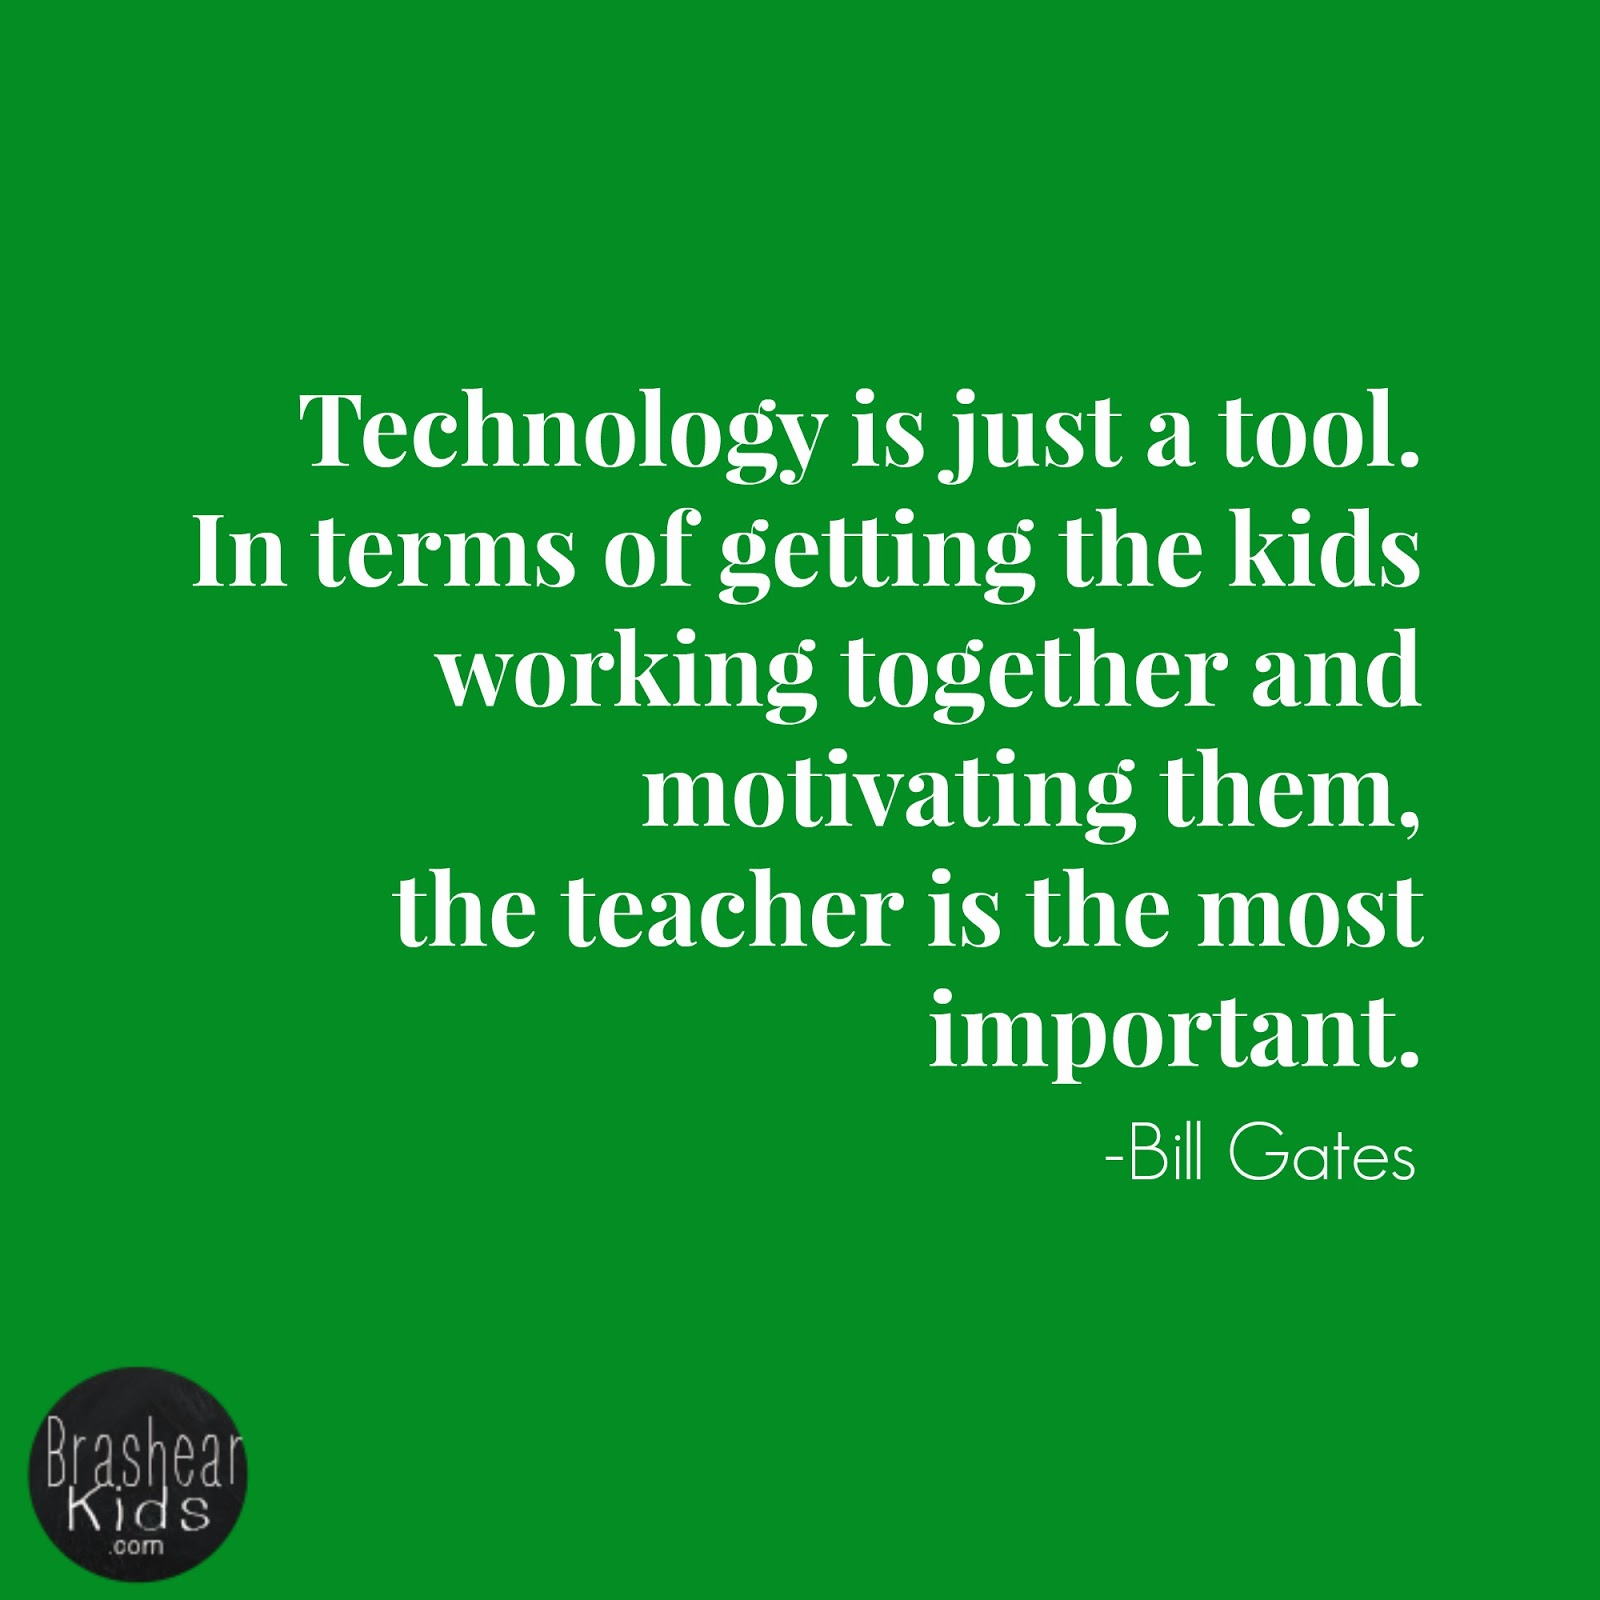 Famous Quotes About Technology In Education: Computer Education Quotes. QuotesGram